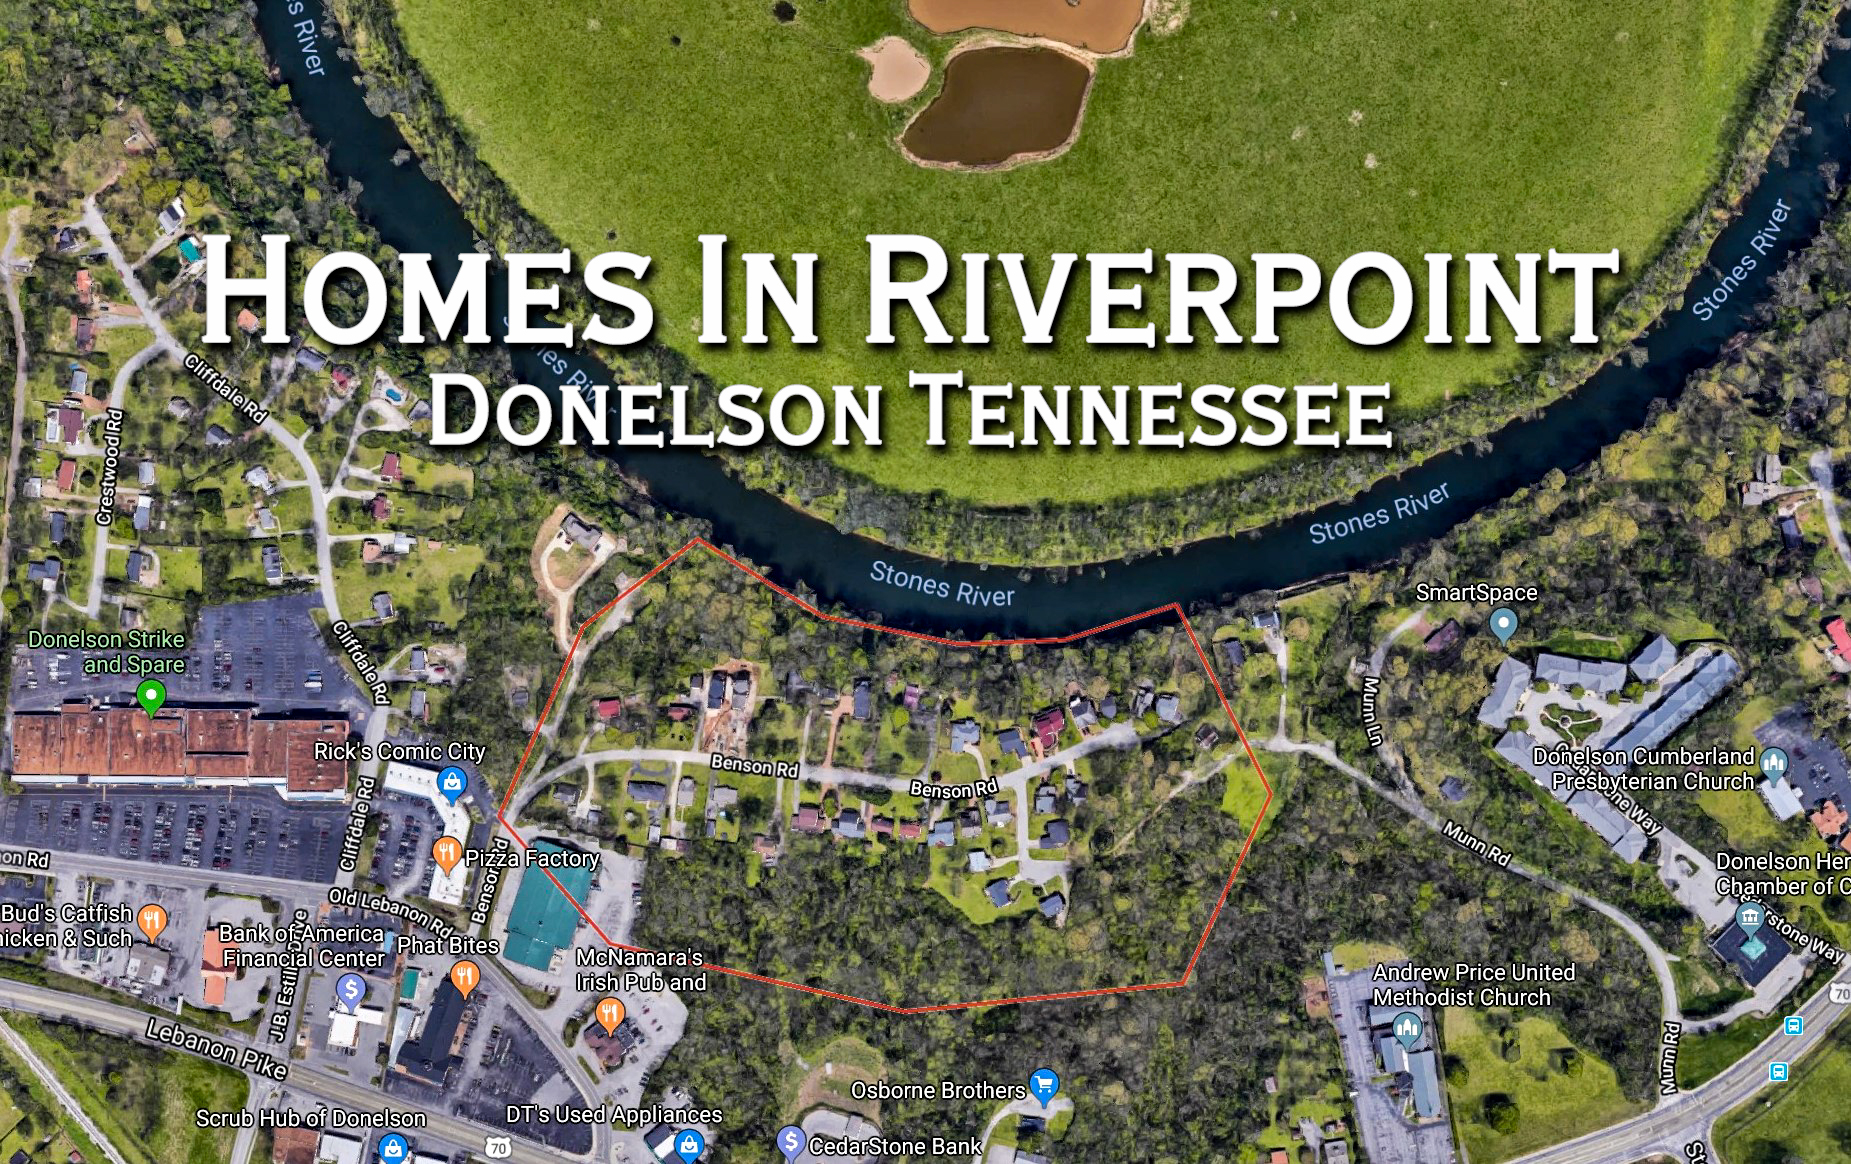 riverpoint donelson tennessee